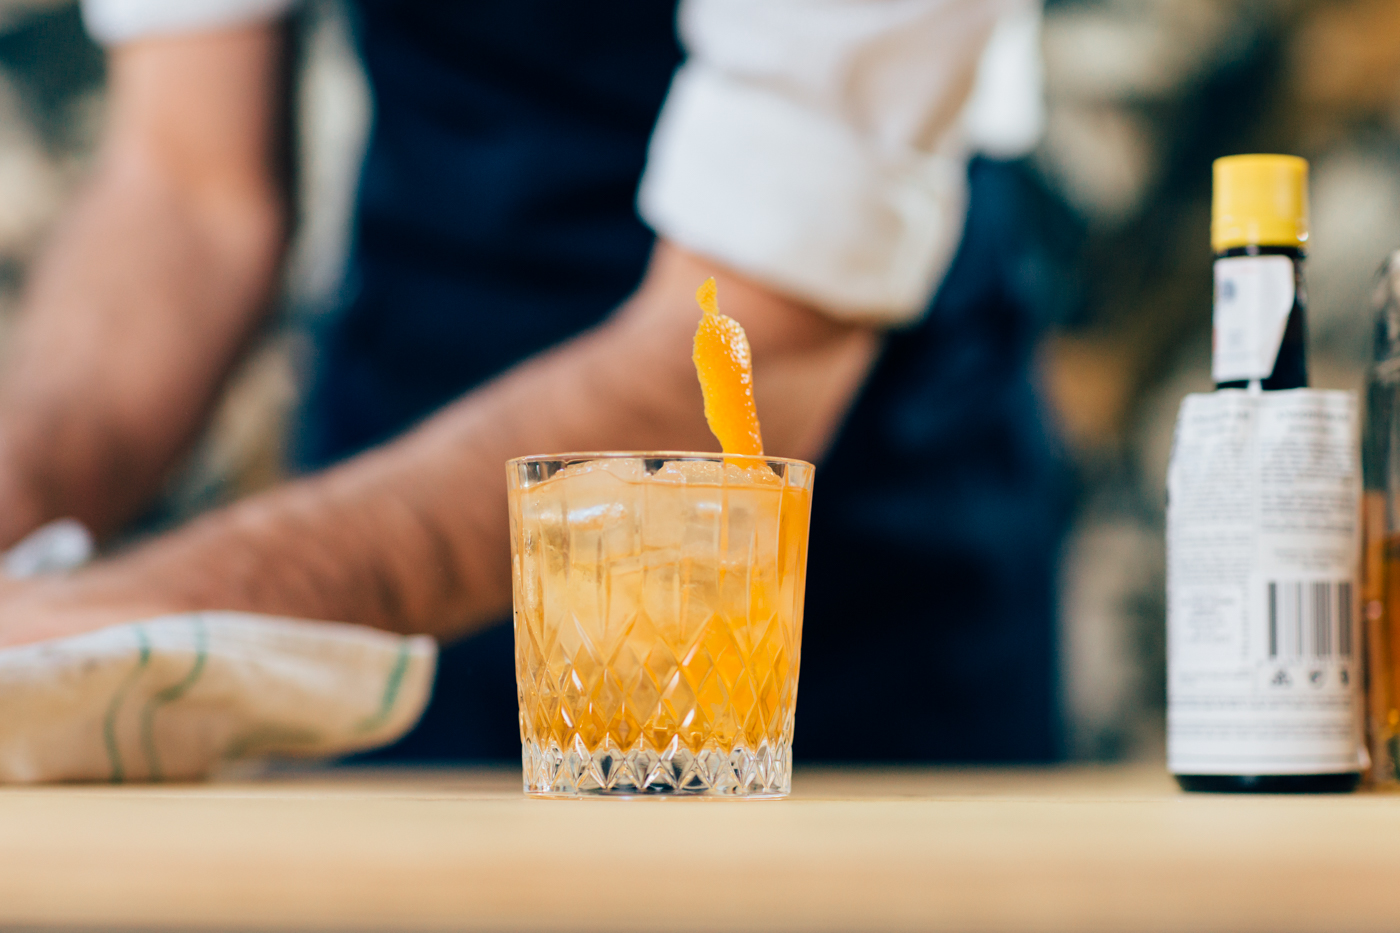 How-to-make-old-fashioned-cocktail-brisbane-gathering-events-mobile-cocktail-bartender